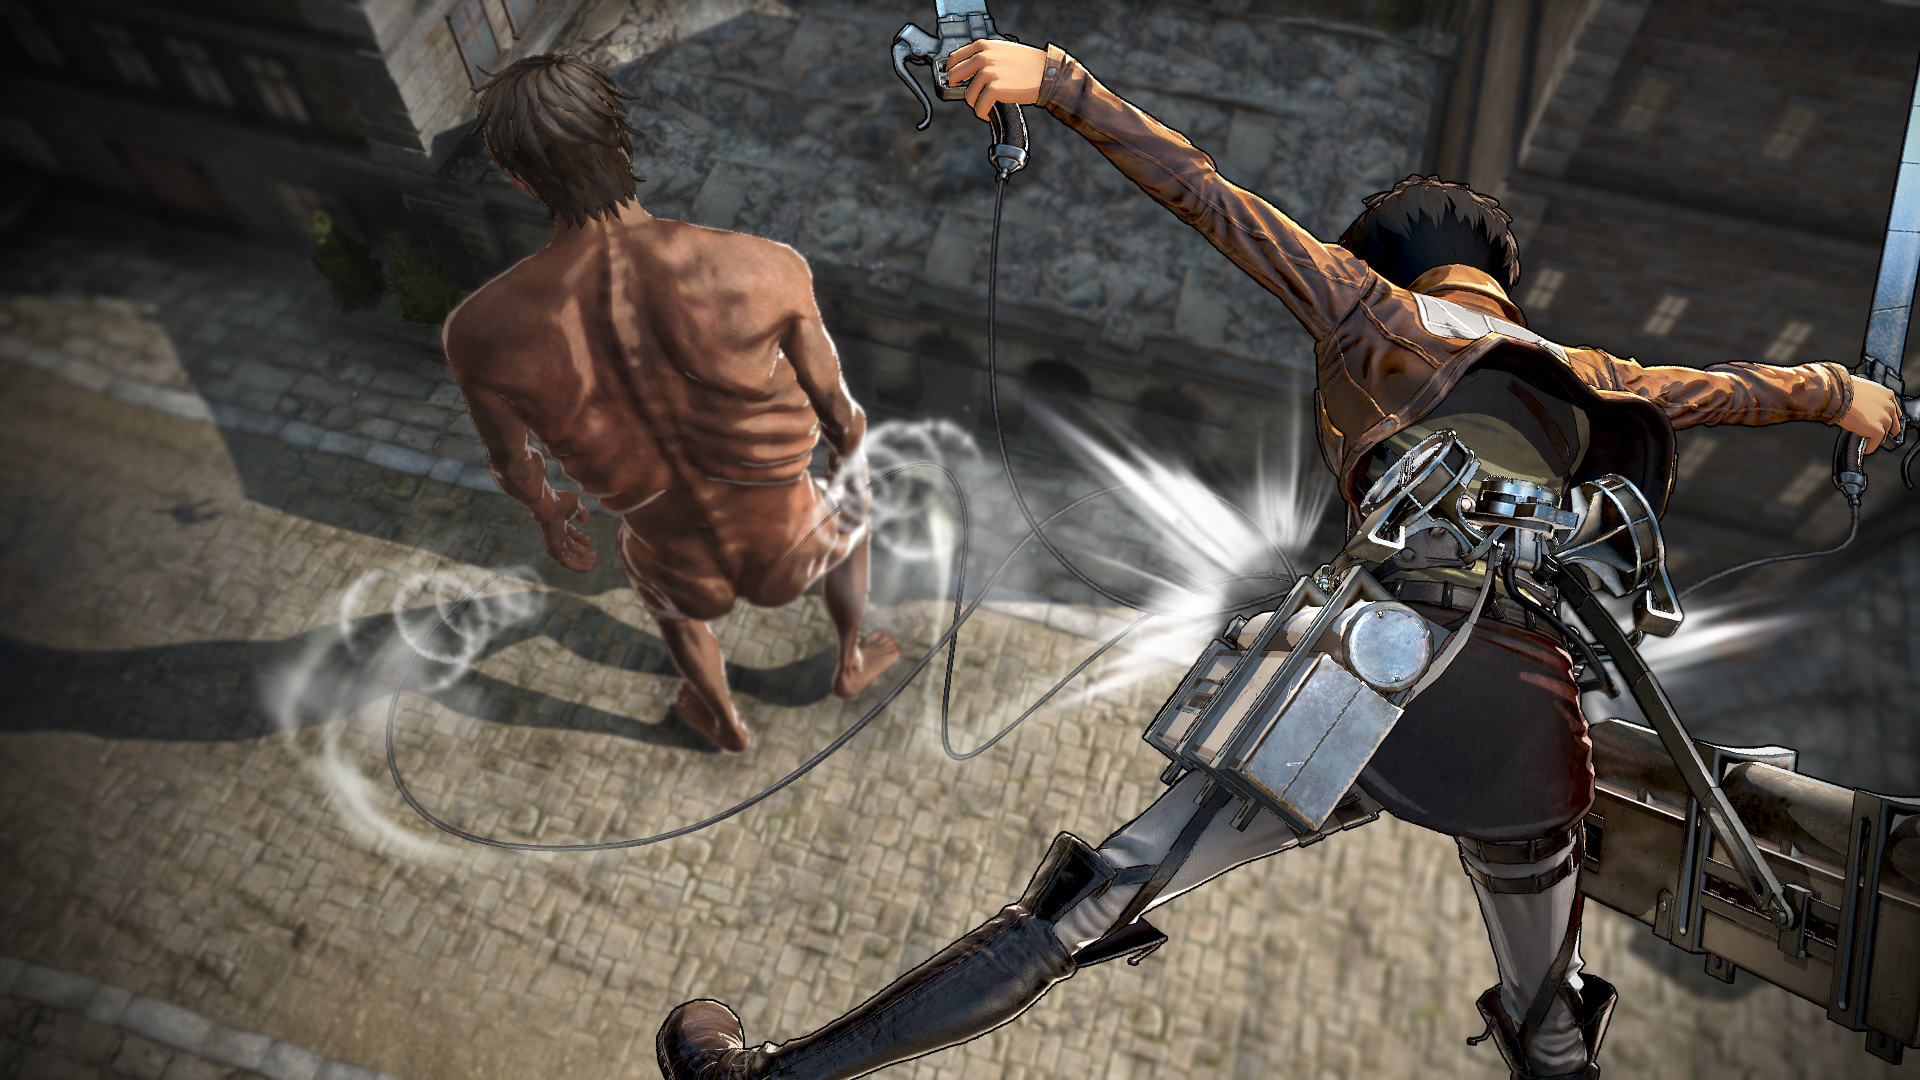 Attack on Titan 2 Invades the West in 2018